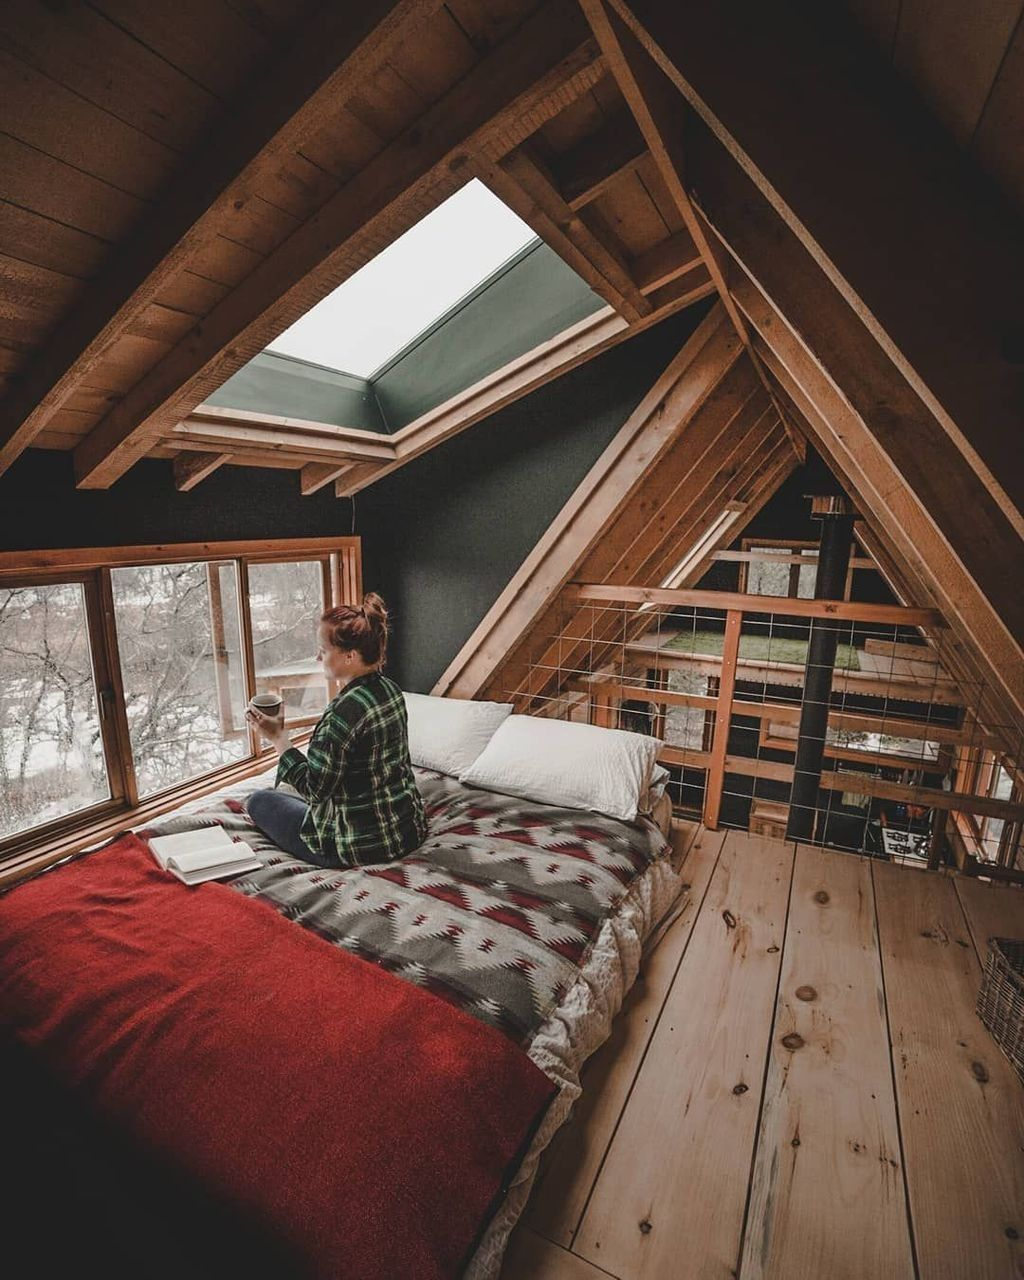 49 Stylish Loft Bedroom Design Ideas A Frame House Tiny House Design House Rooms